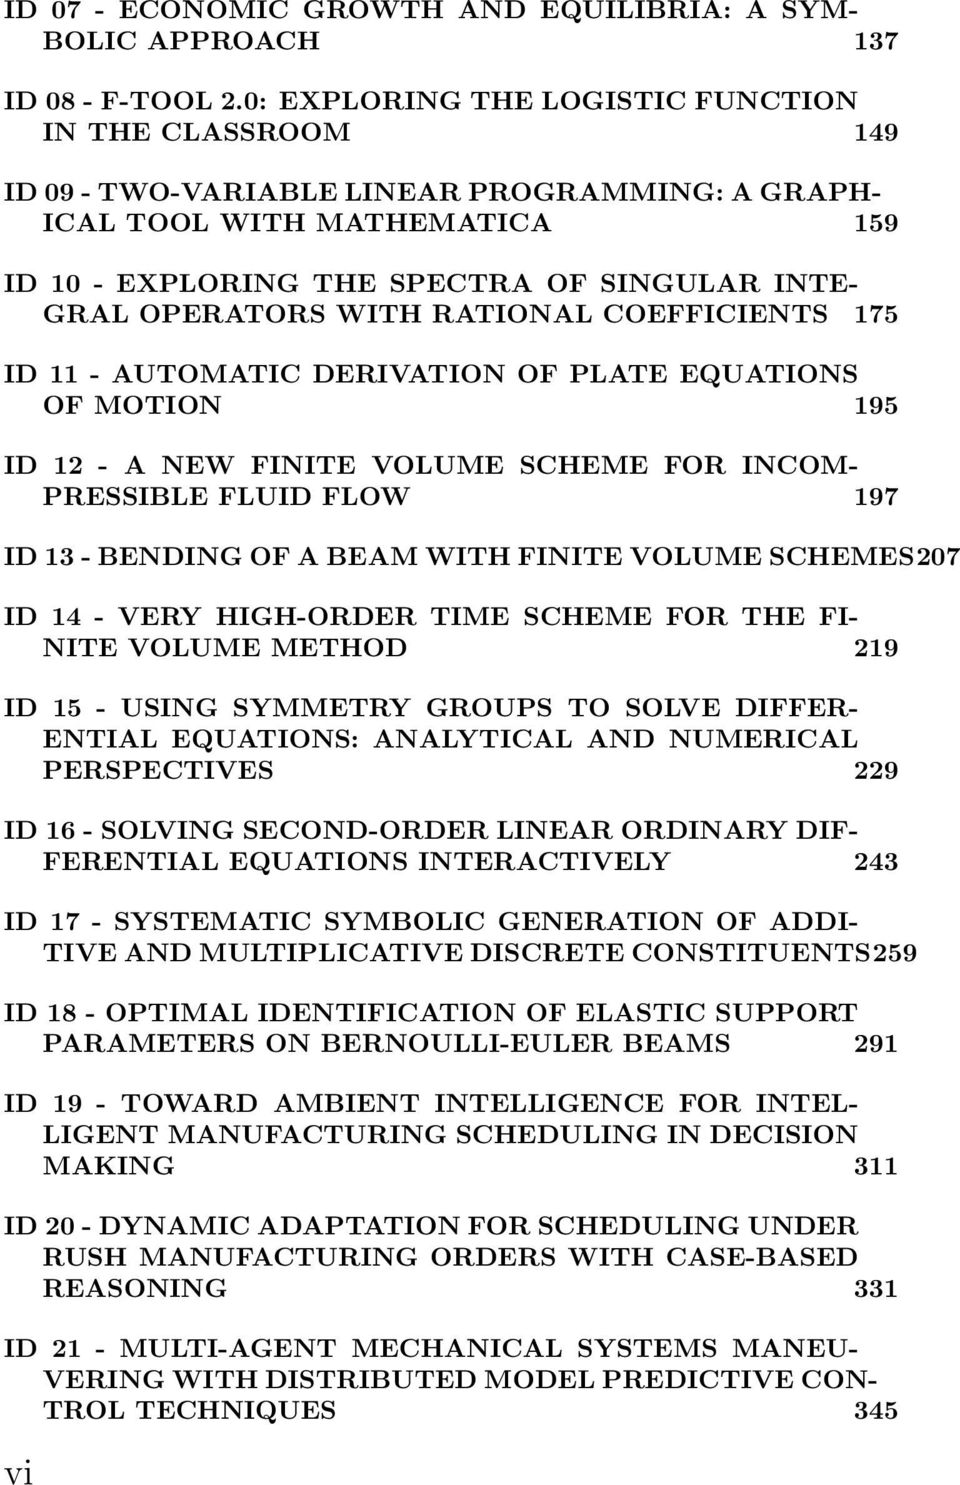 WITH RATIONAL COEFFICIENTS 175 ID 11 - AUTOMATIC DERIVATION OF PLATE EQUATIONS OF MOTION 195 ID 12 - A NEW FINITE VOLUME SCHEME FOR INCOM- PRESSIBLE FLUID FLOW 197 ID 13 - BENDING OF A BEAM WITH